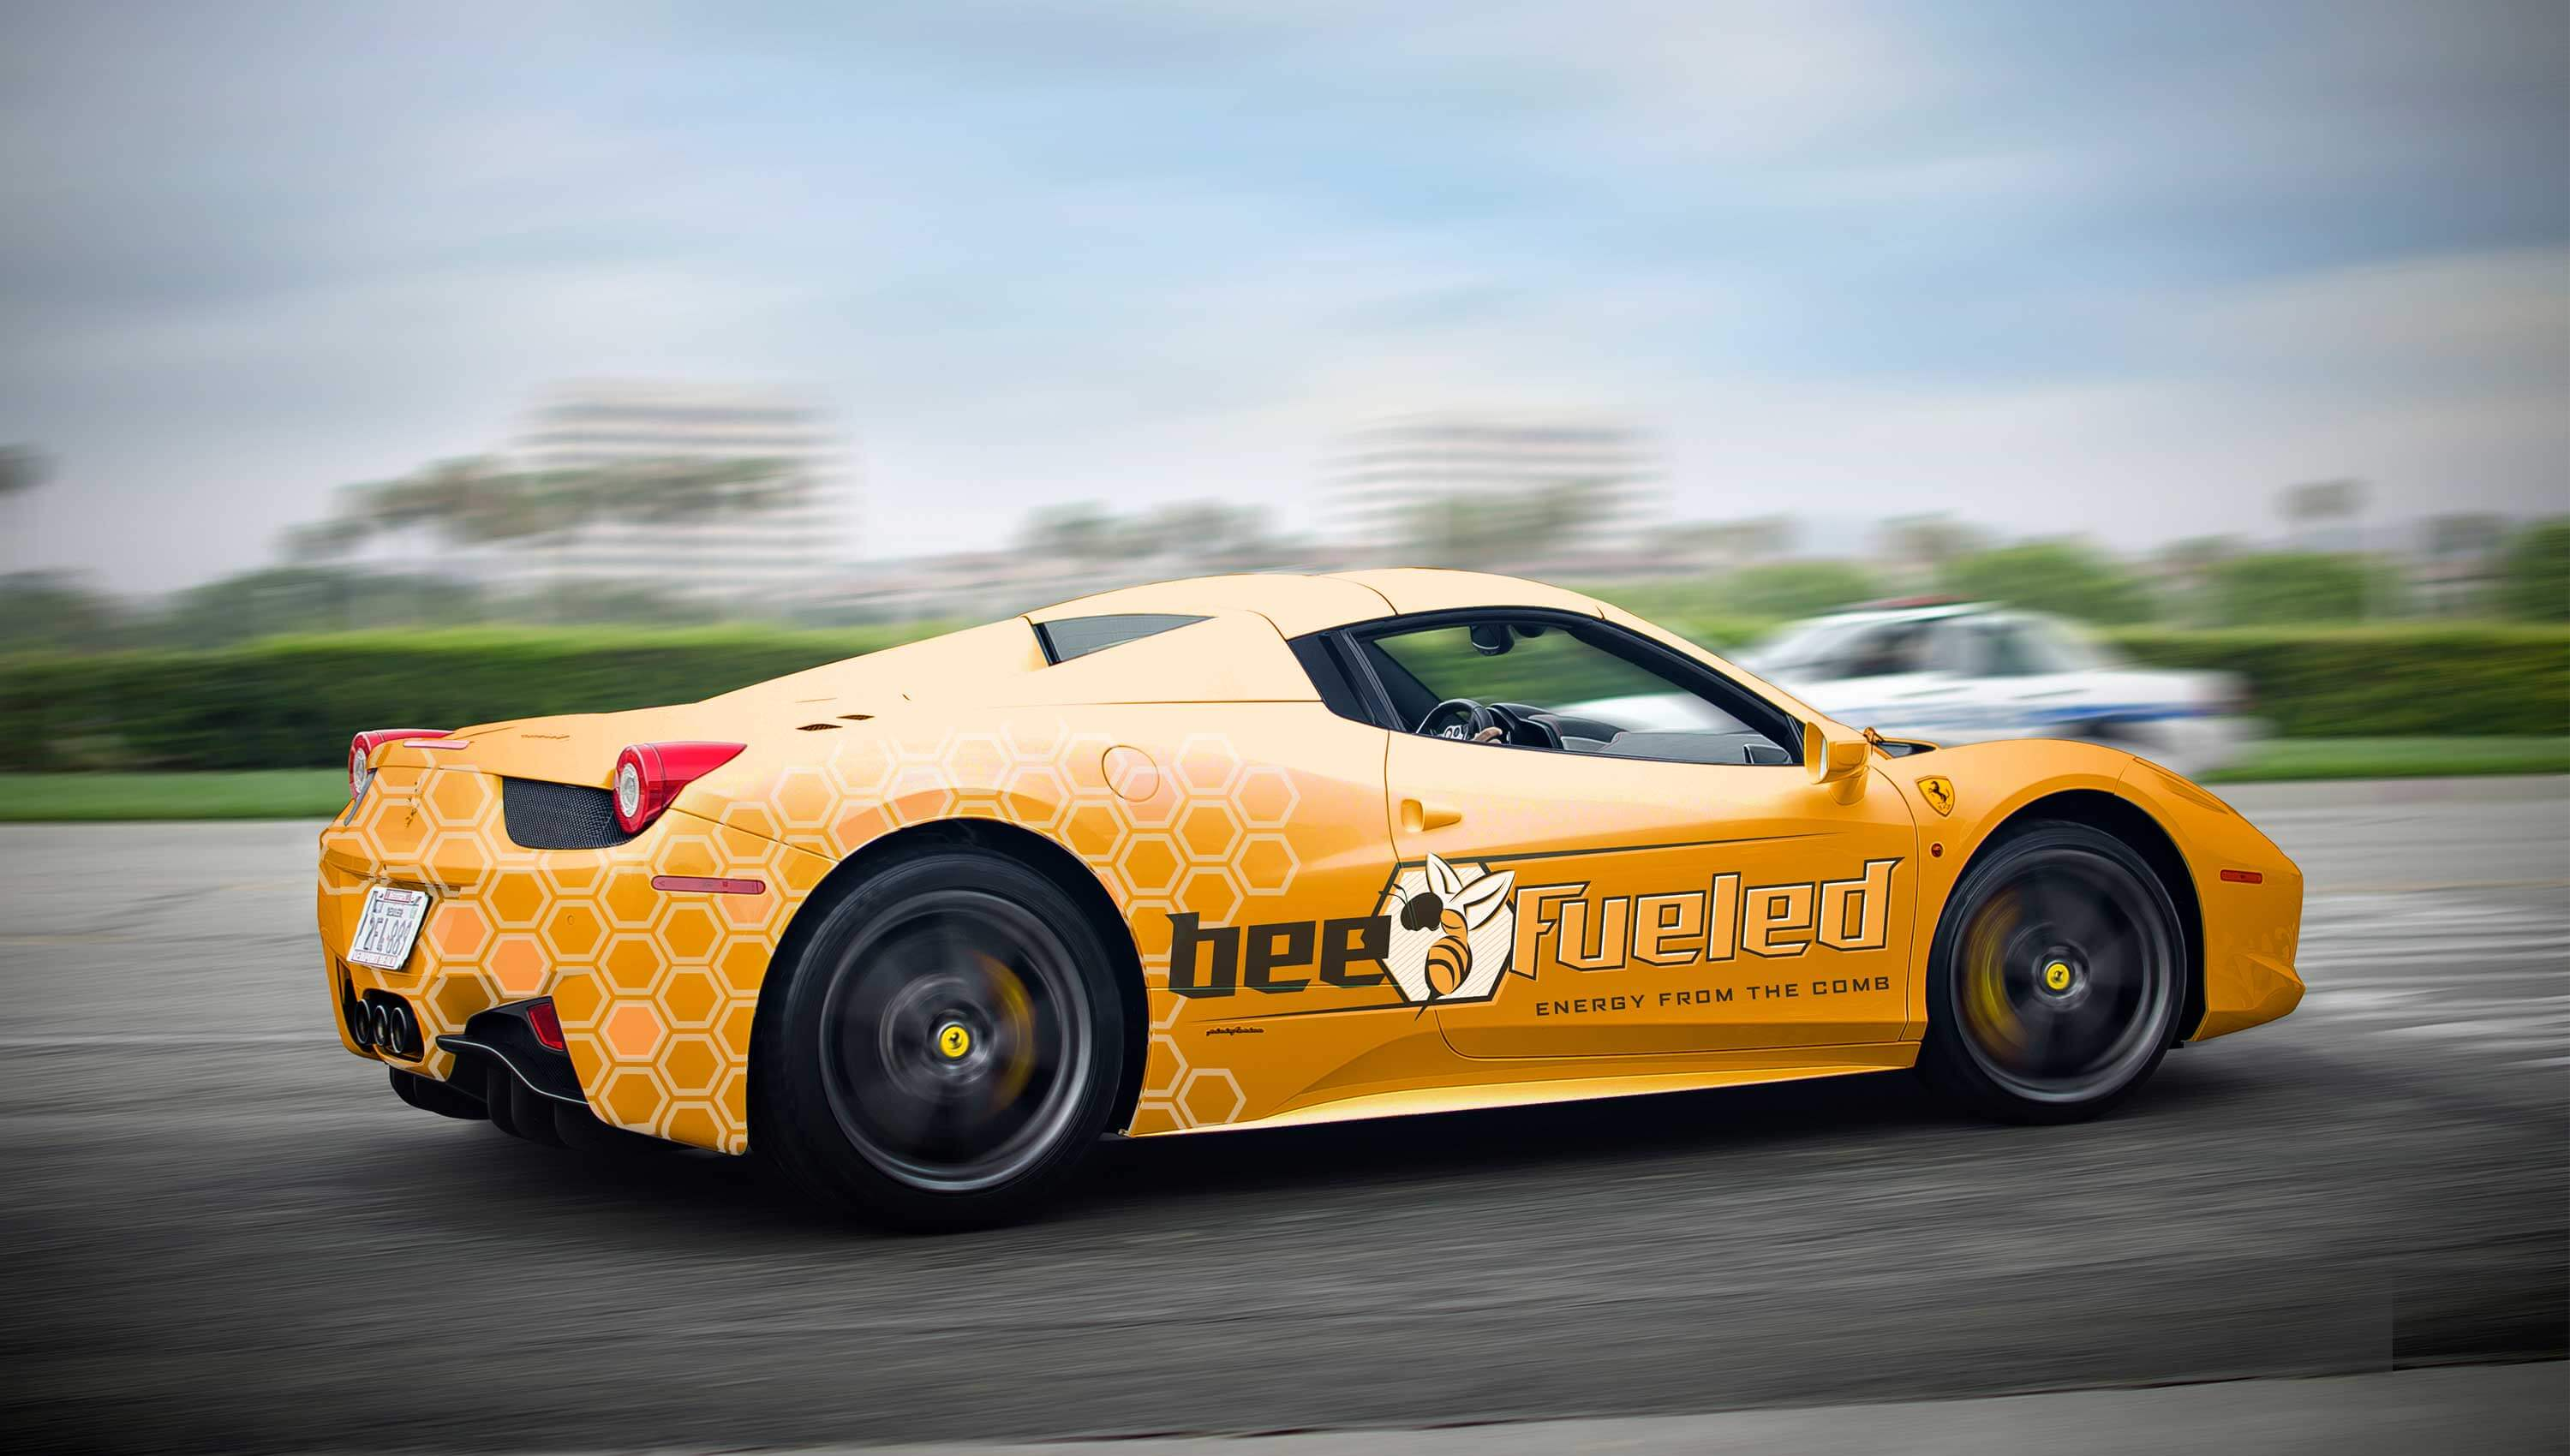 Bee Fueled car wrap design.